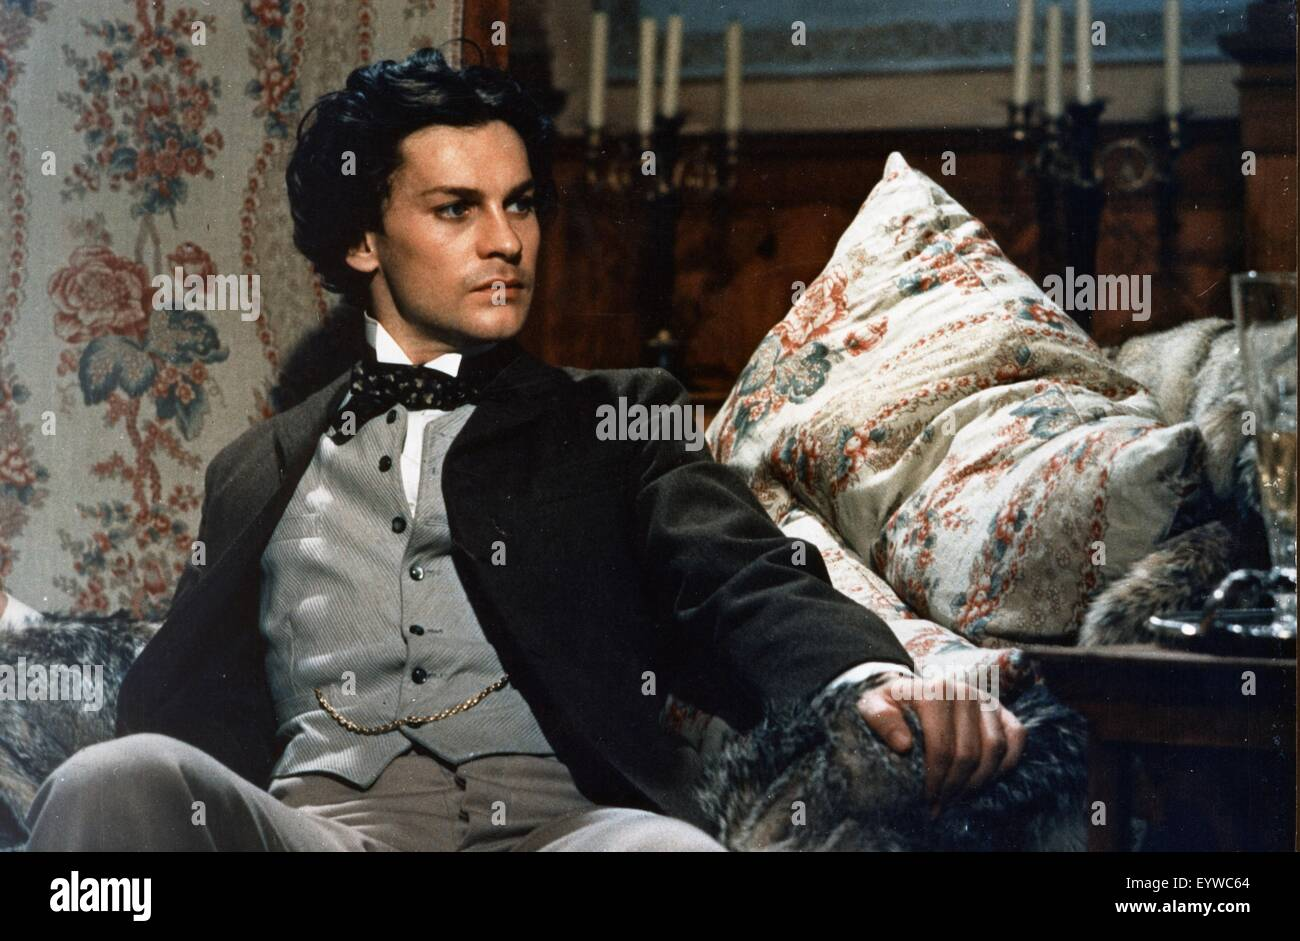 Ludwig  Year: 1972 - Italy Helmut Berger  Director: Luchino Visconti - Stock Image